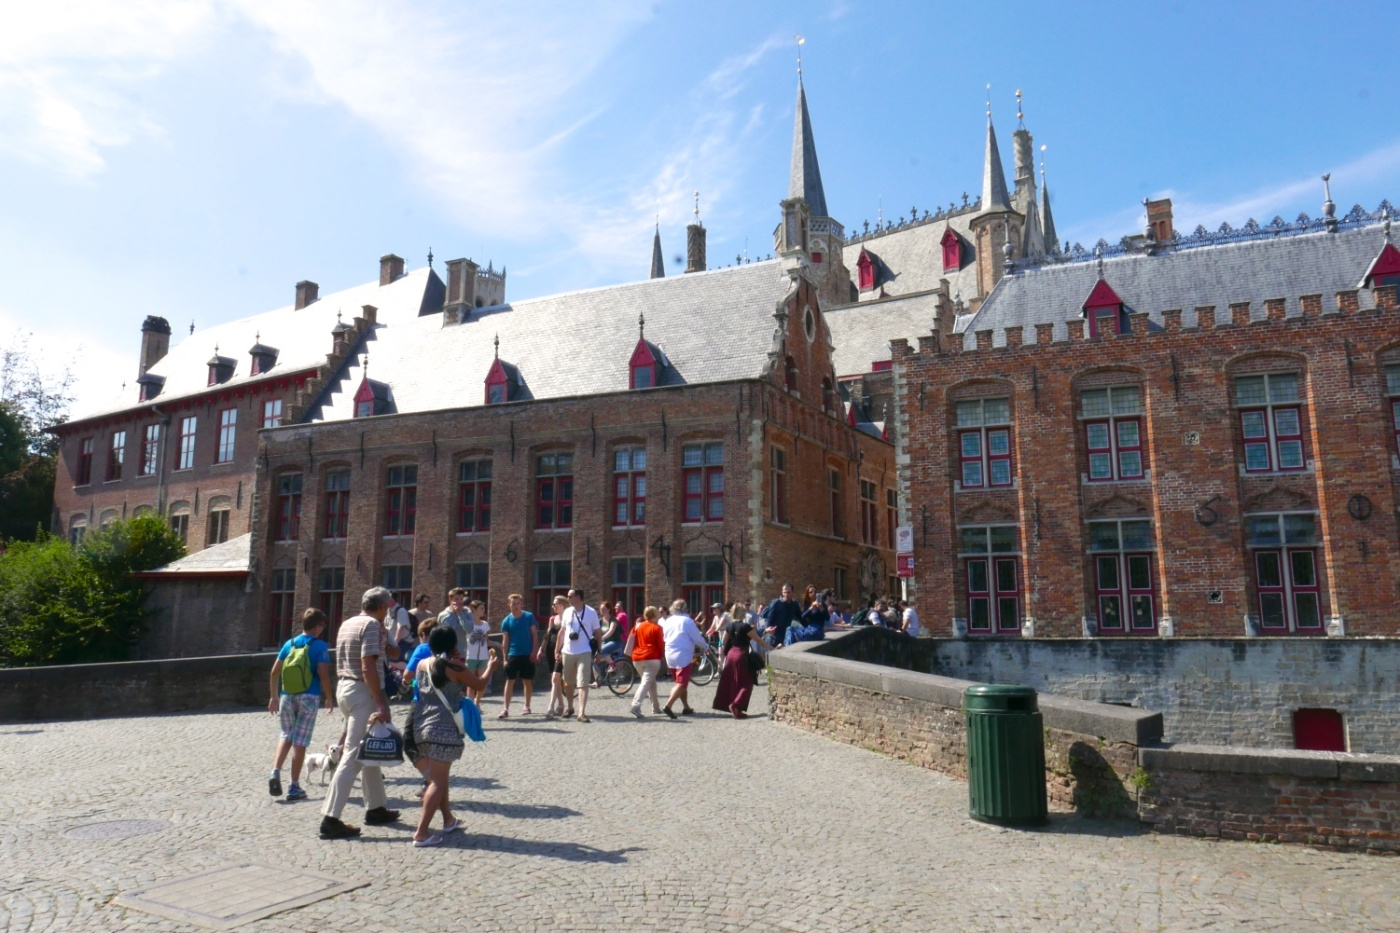 Bistro Bruut is next to one of Bruges' most picturesque canals.